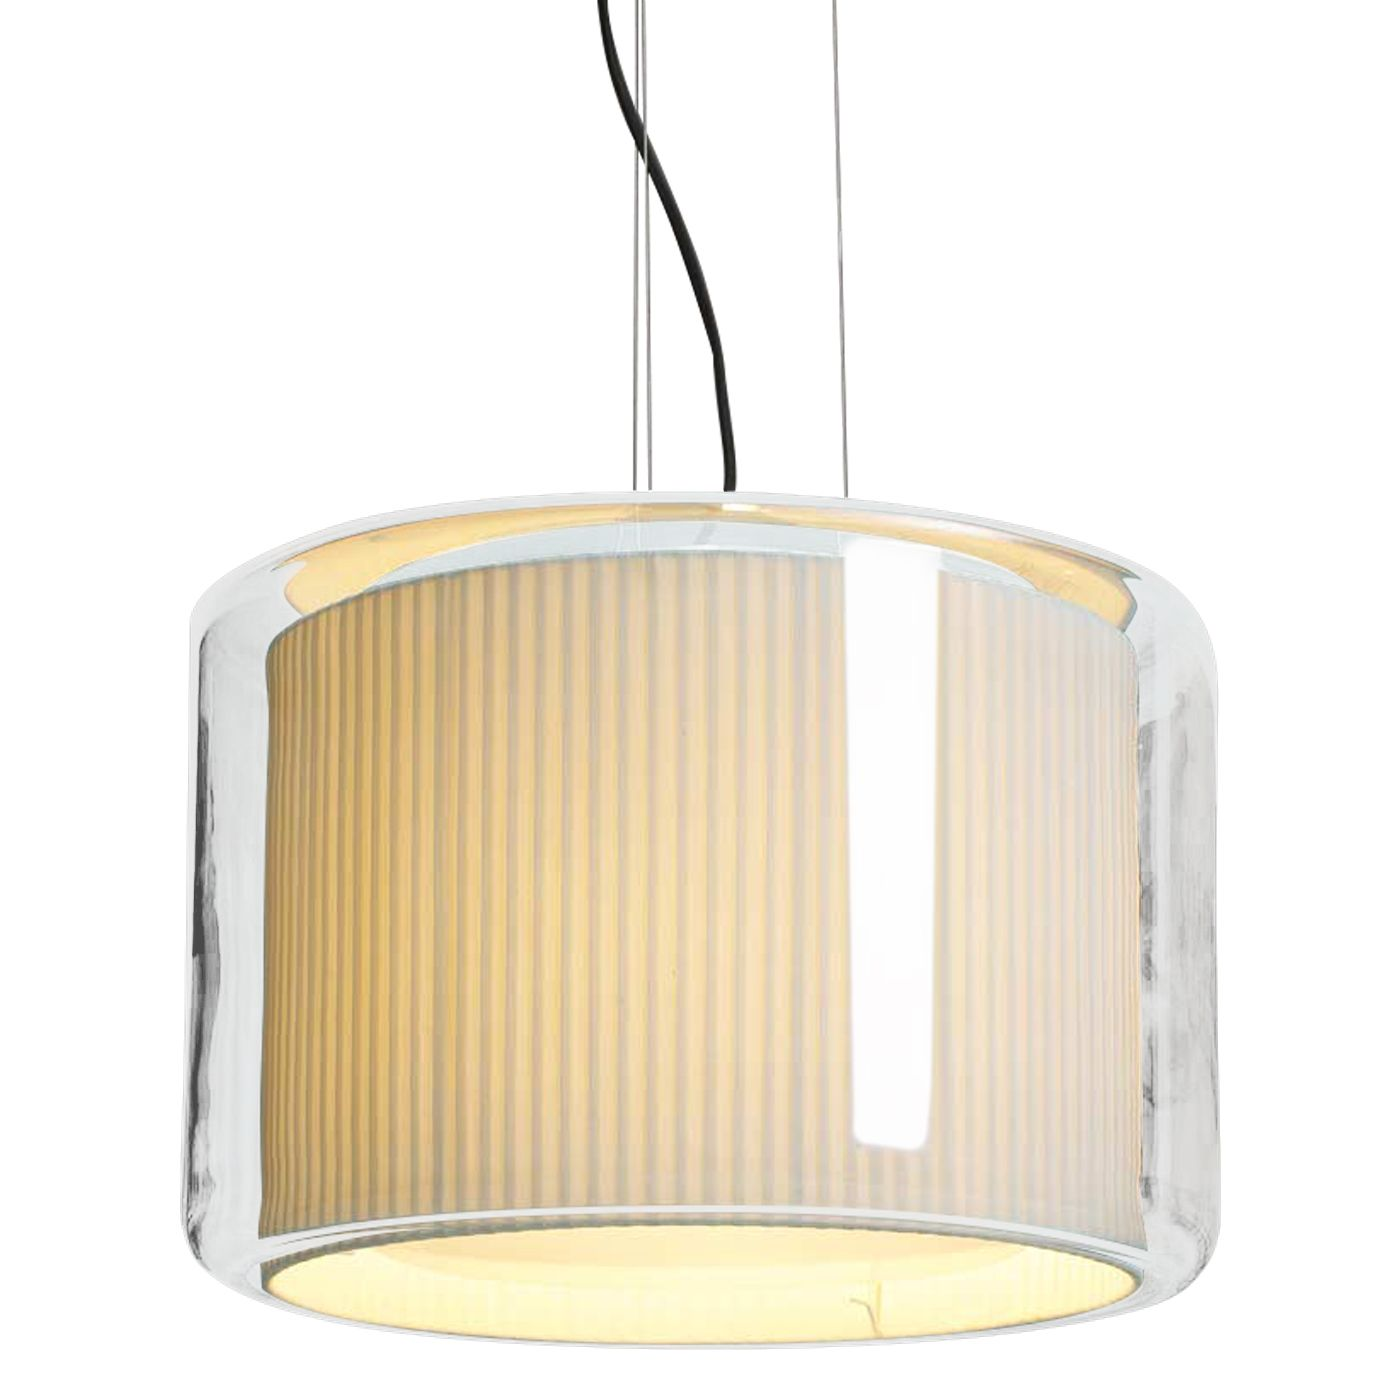 Mercer 44 Round Suspension Lamp